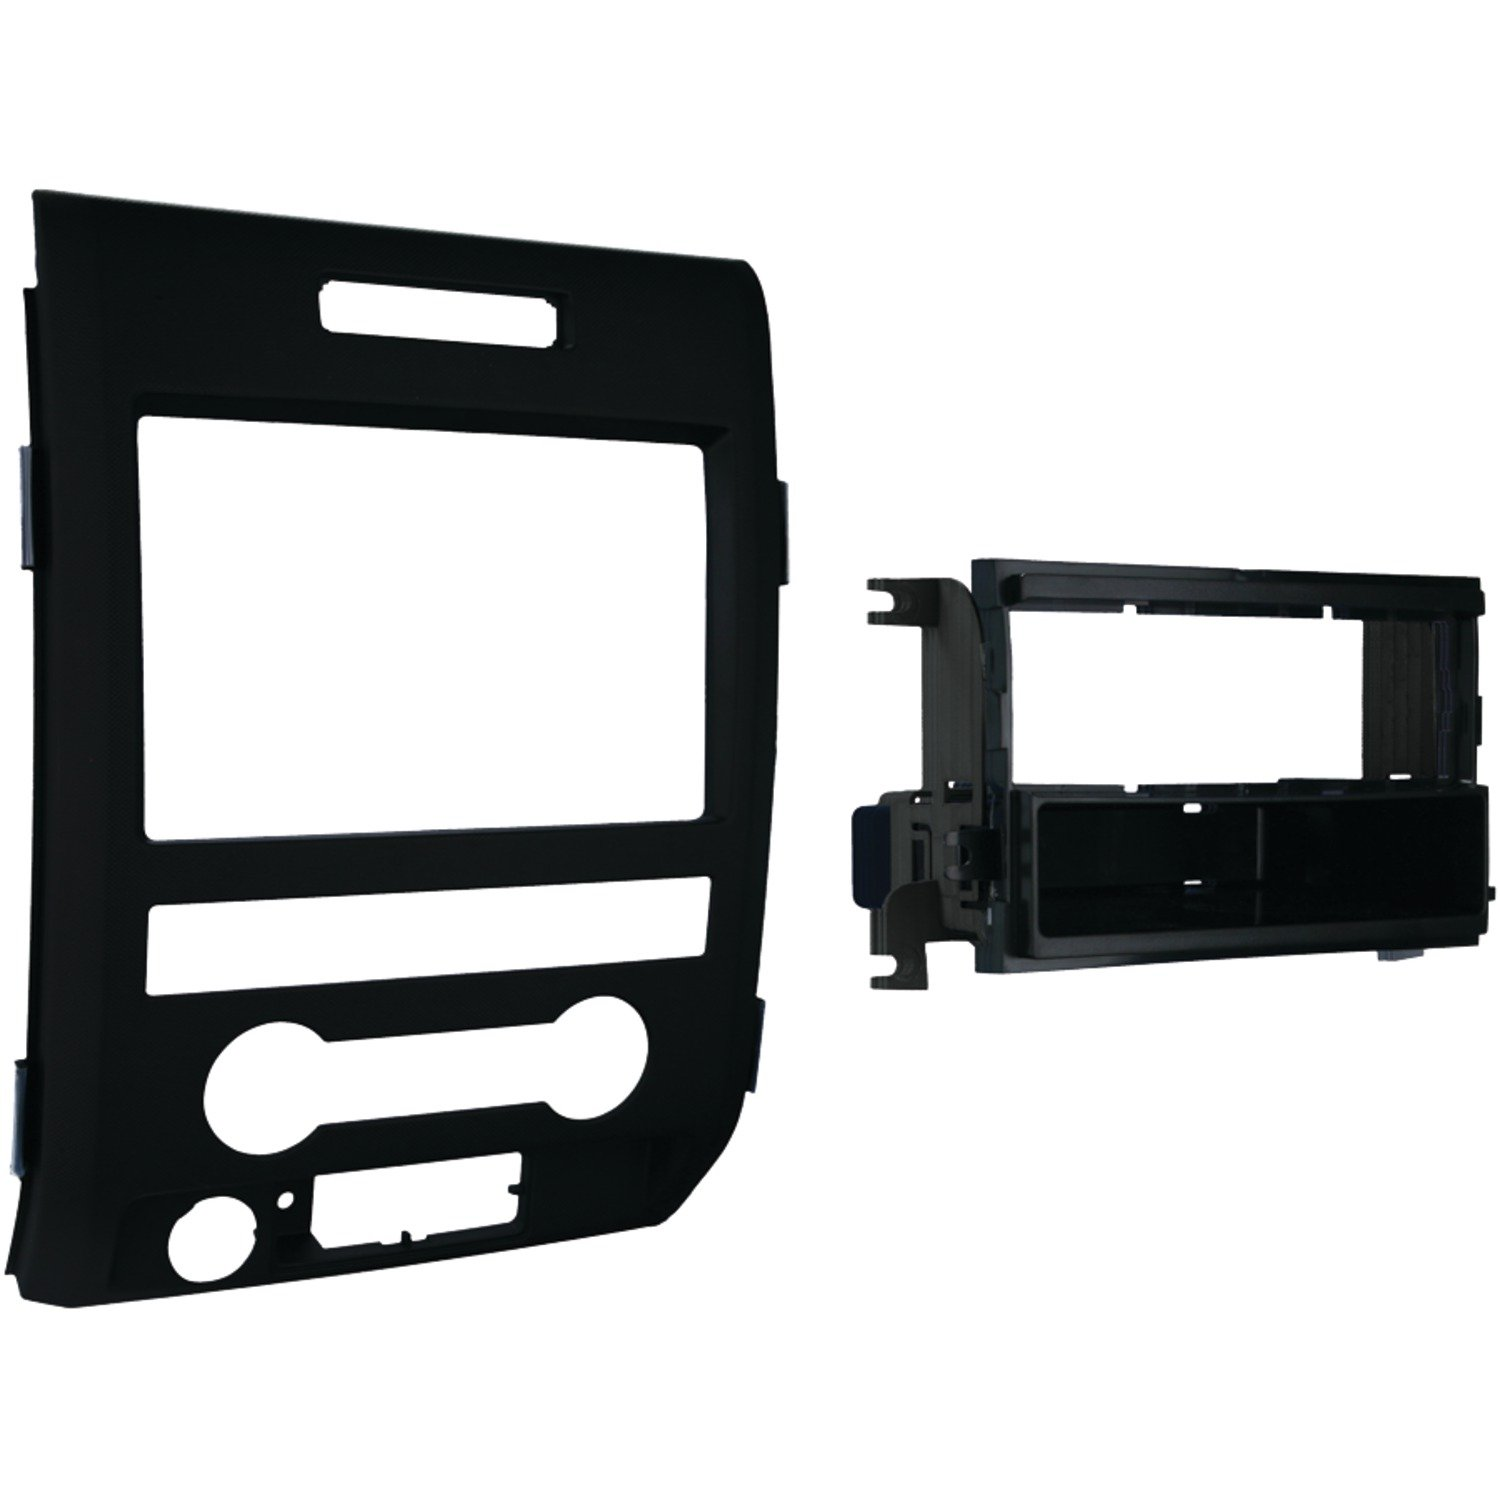 61EJfEsElrL._SL1500_ amazon com metra 99 5820b single din installation dash kit for Dash Kit for F150 at sewacar.co